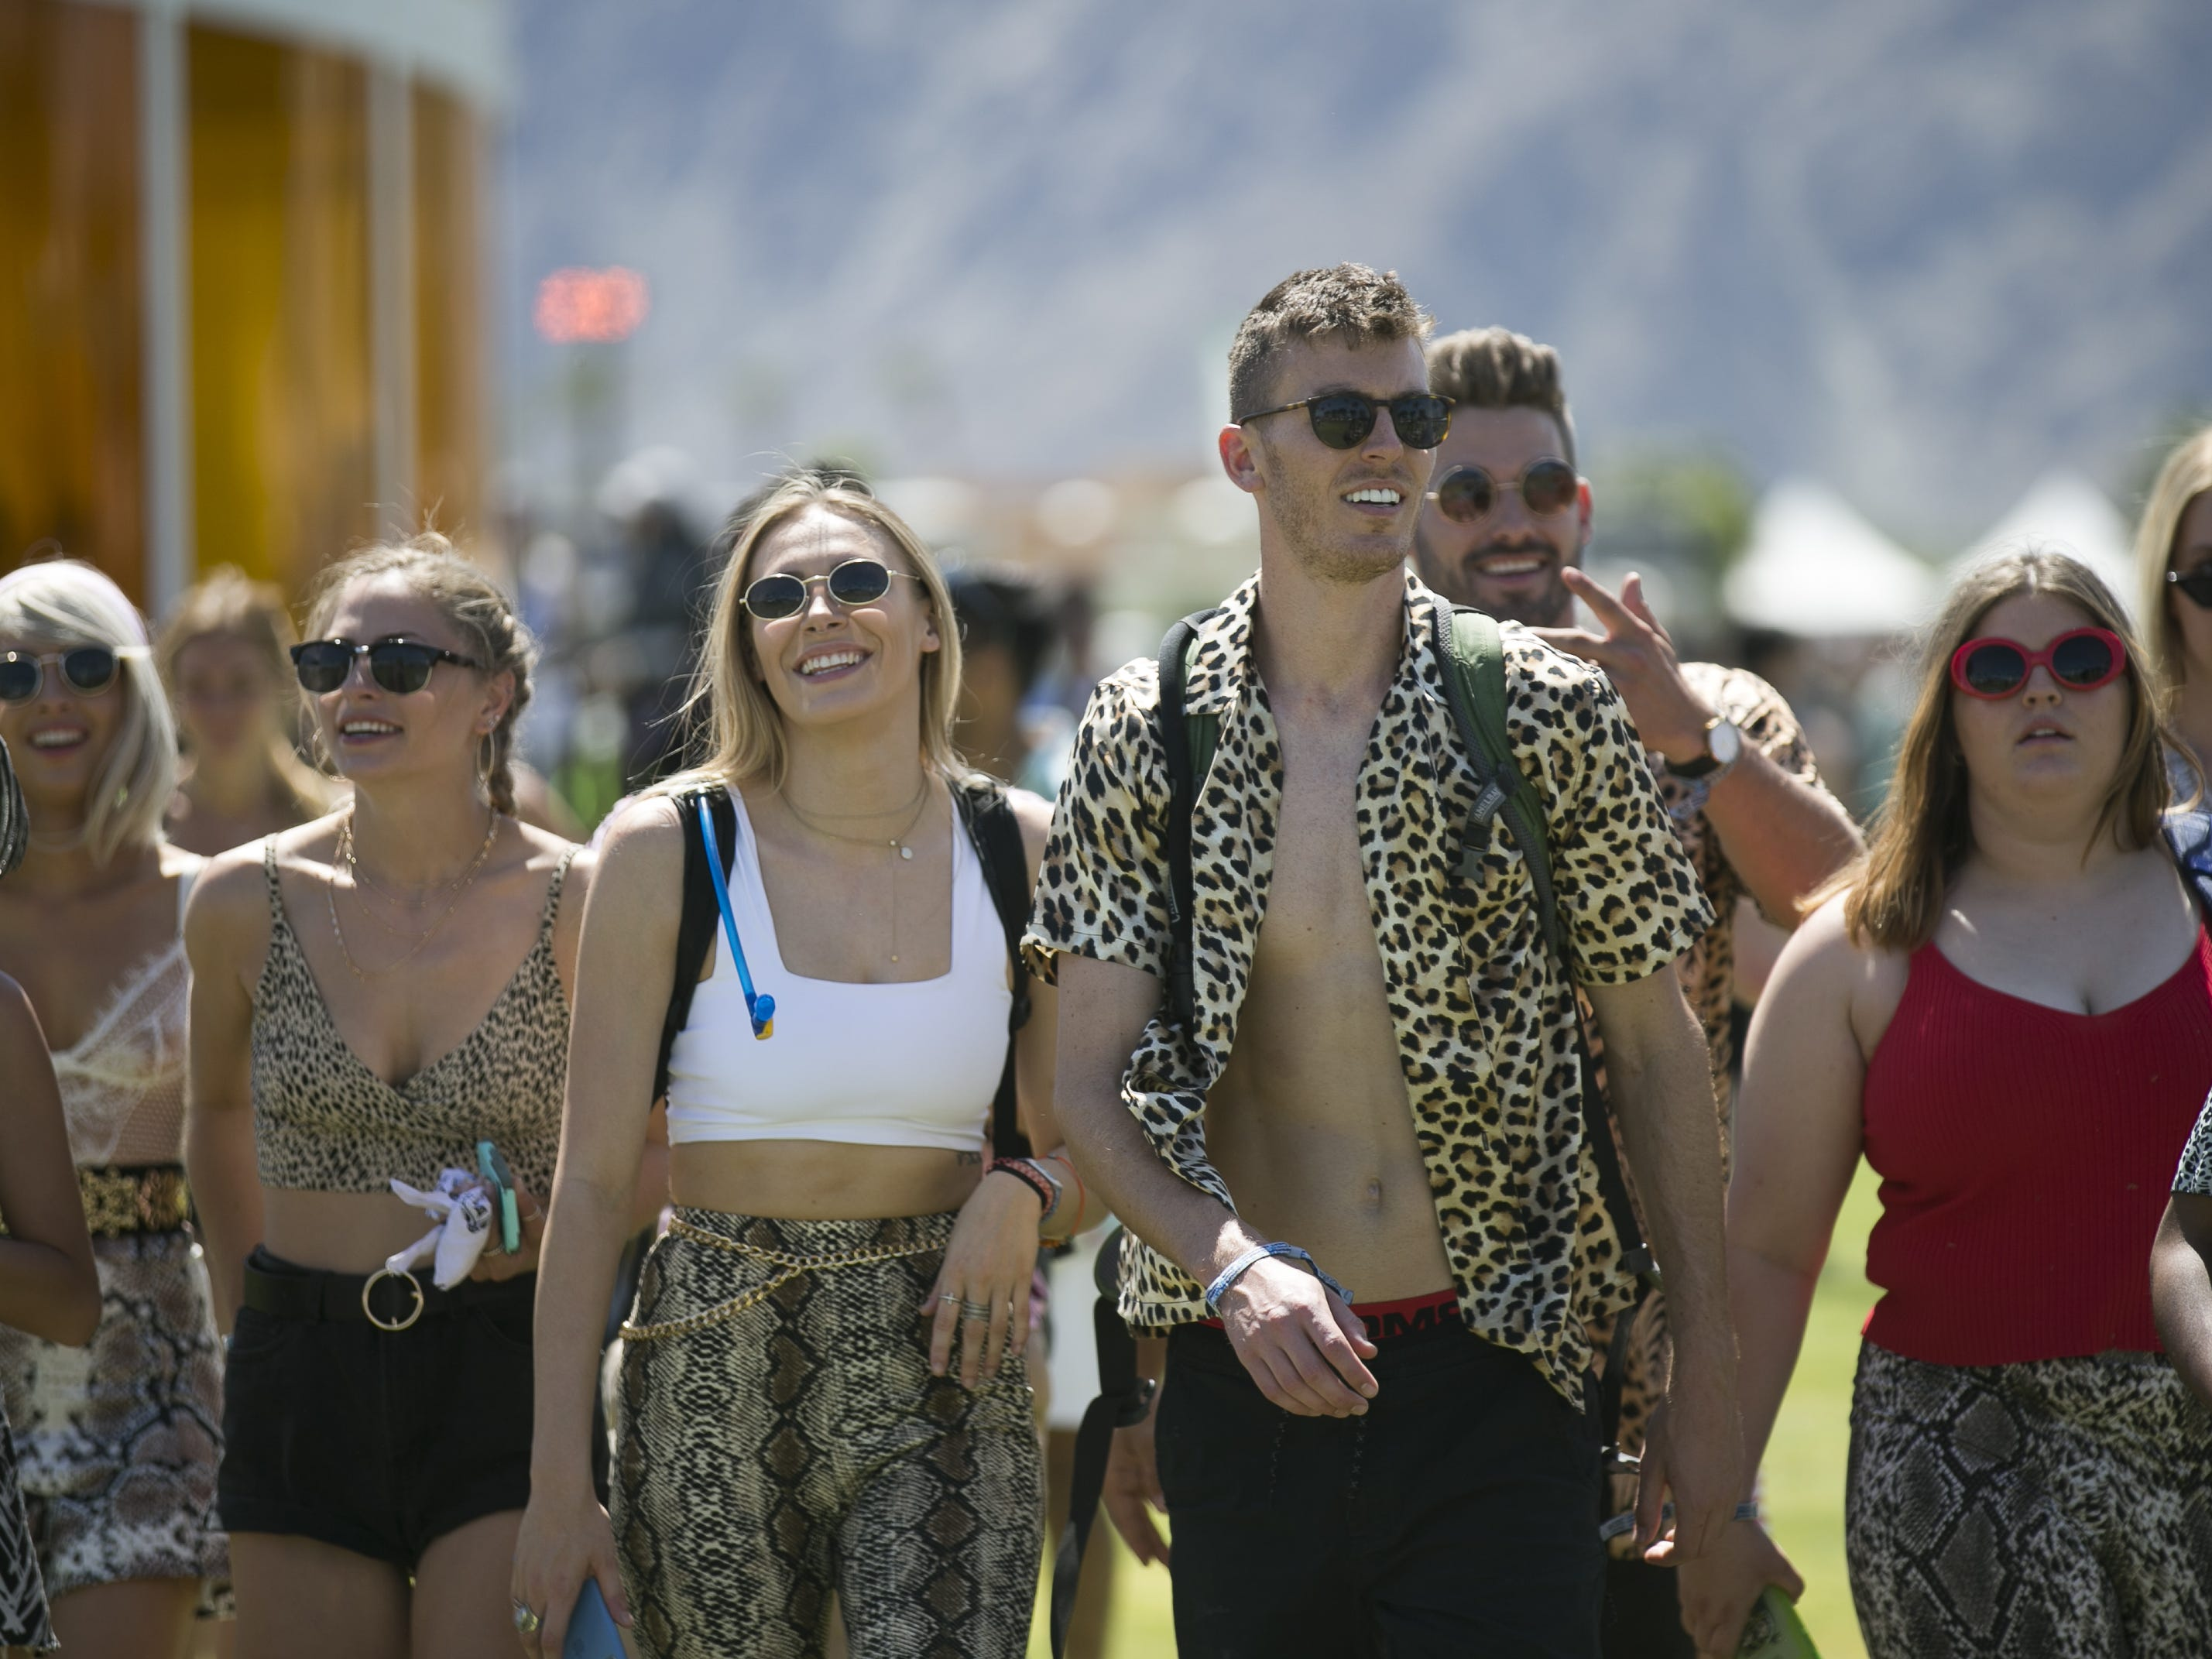 People gather at the Coachella Valley Music and Arts Festival in Indio, Calif. on April 12, 2019.